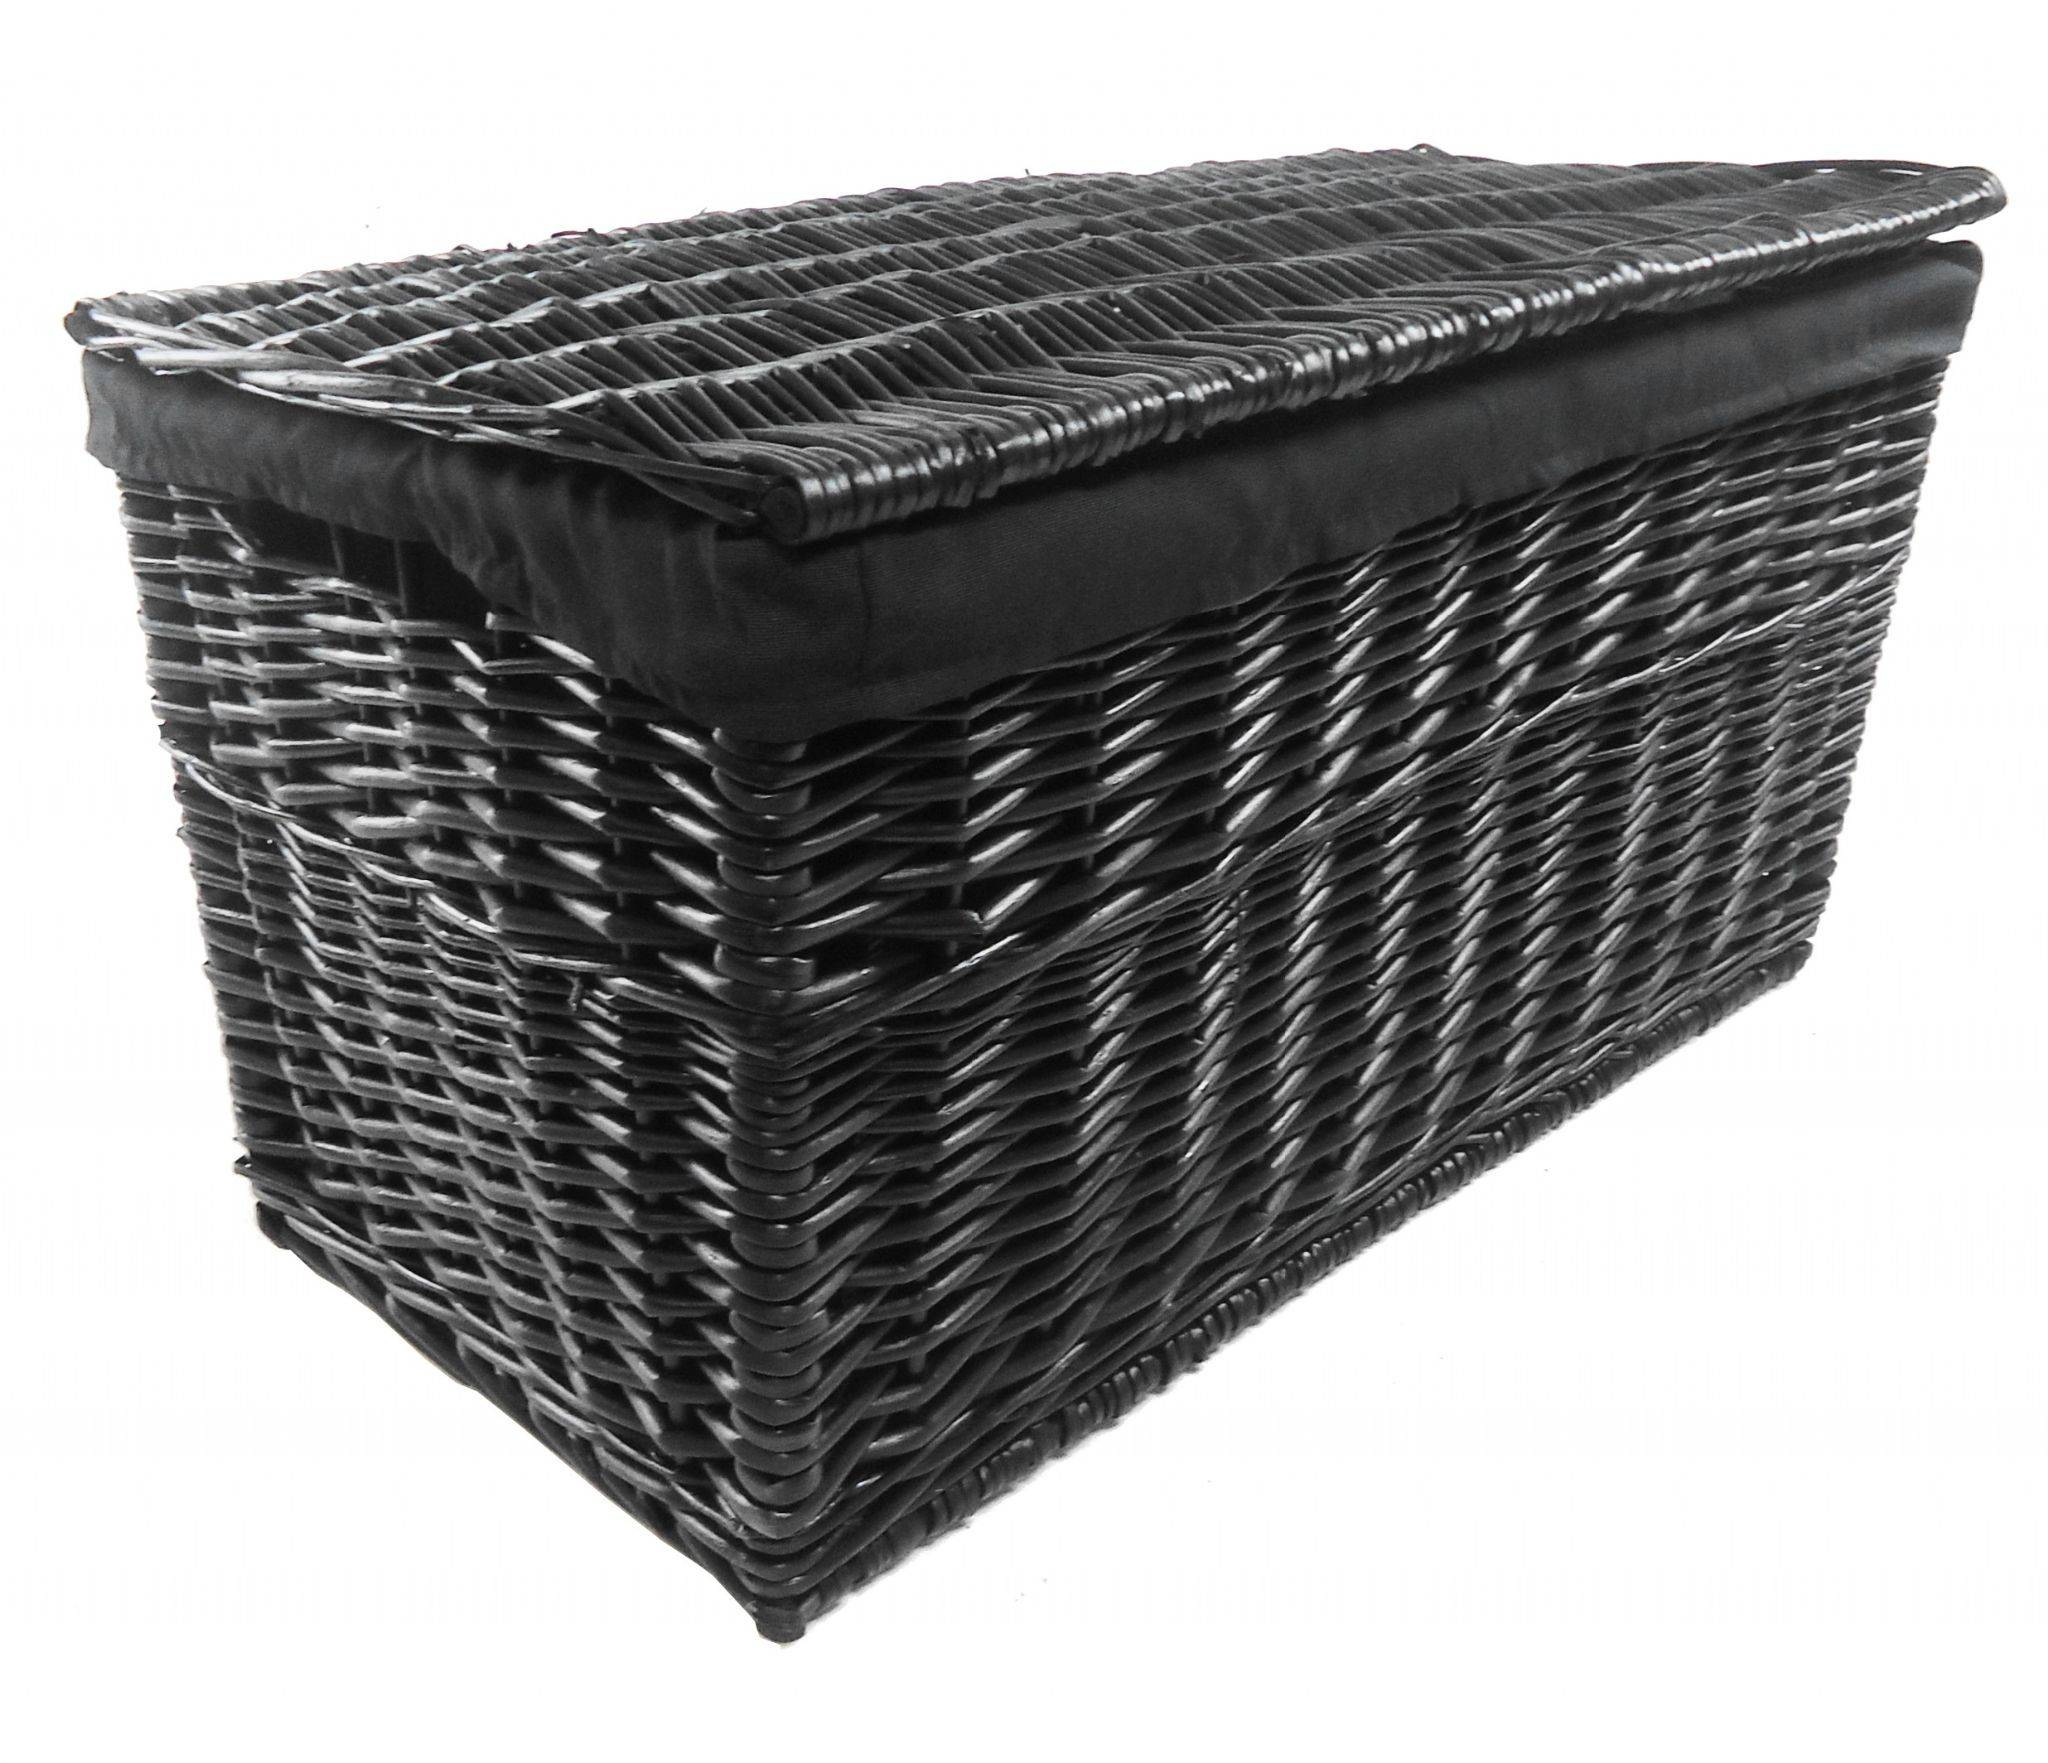 2017 Best of Coffee Table With Wicker Basket Storage